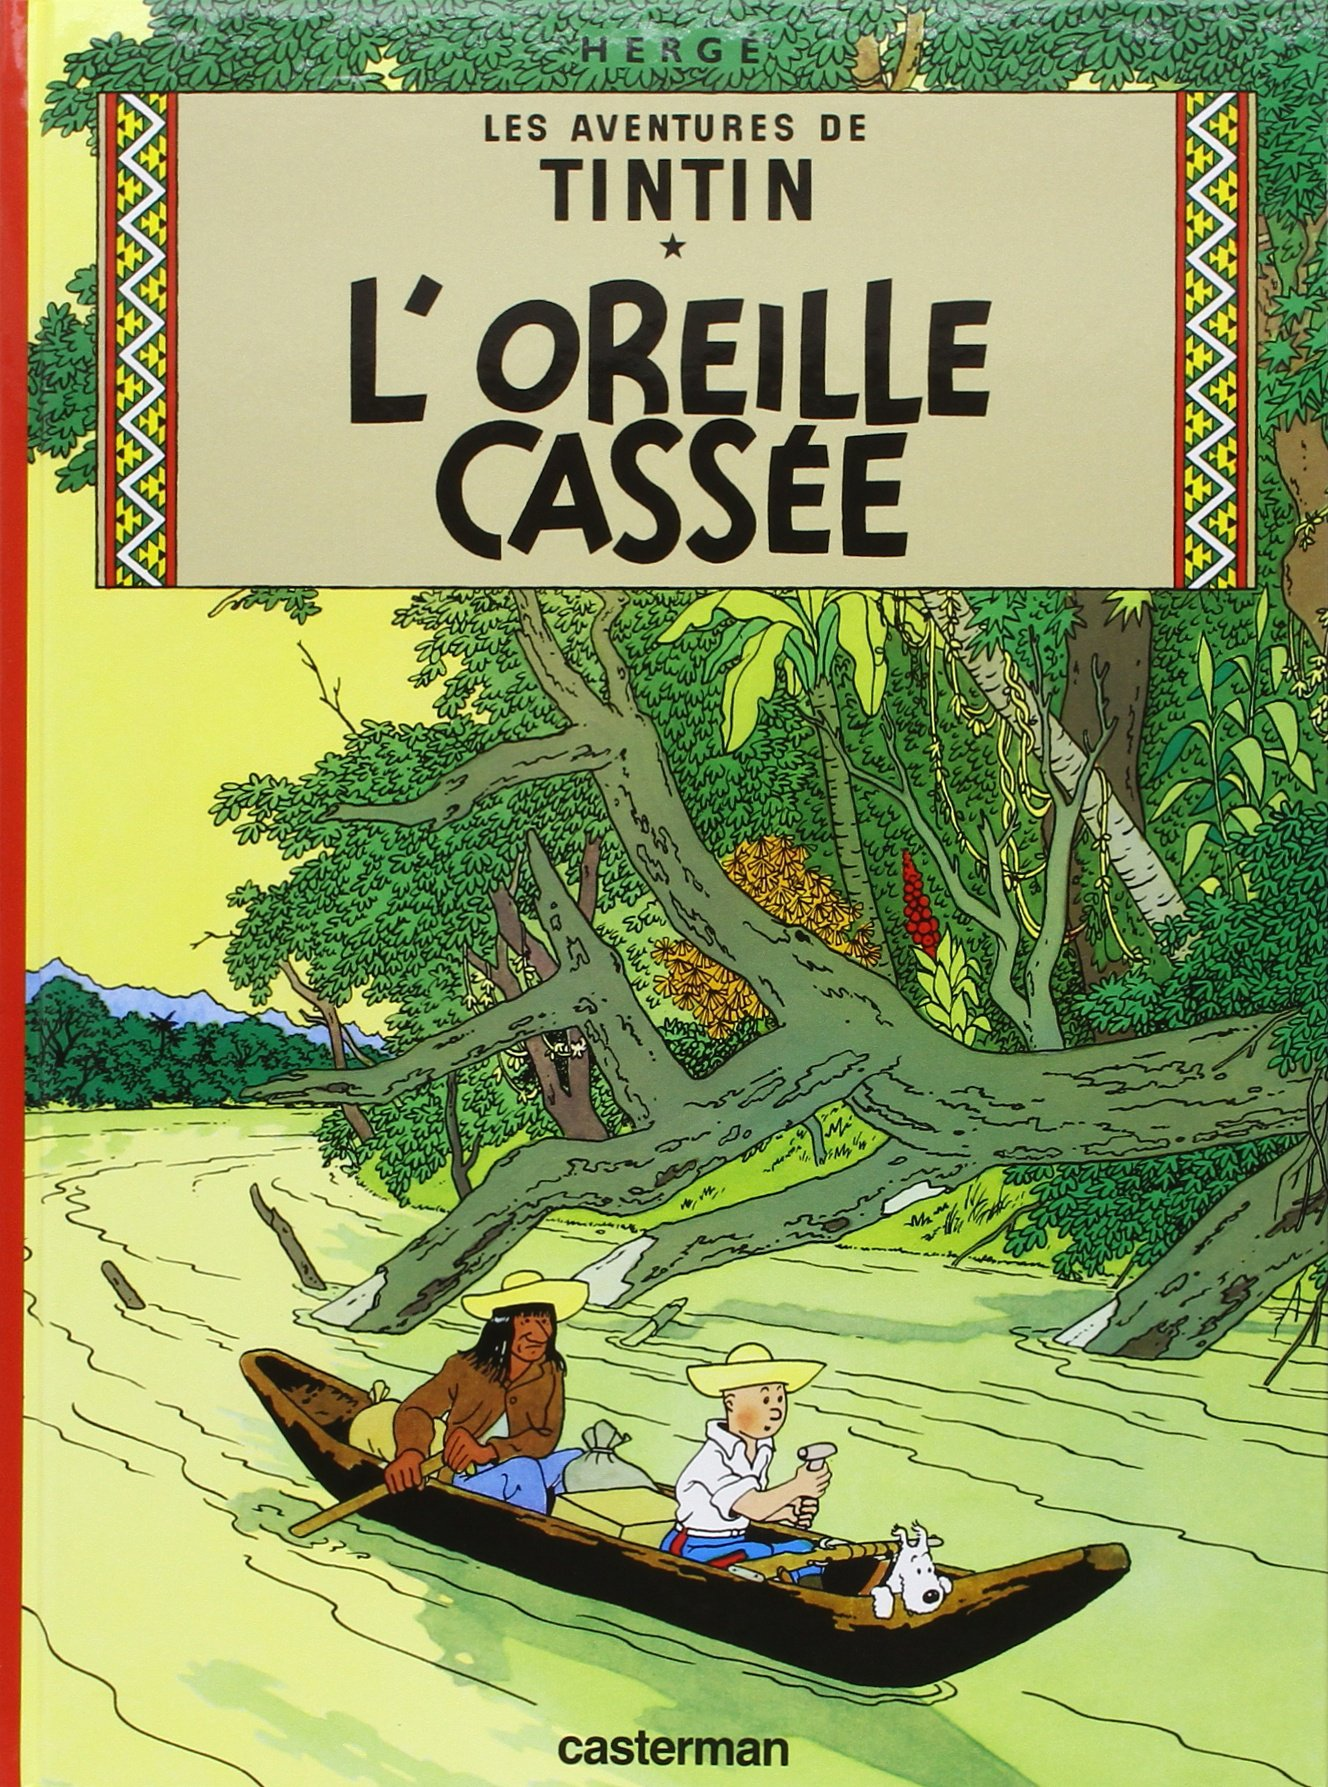 Les Aventures De Tintin: L'Oreille Cassee - Tome 6 (French Edition)